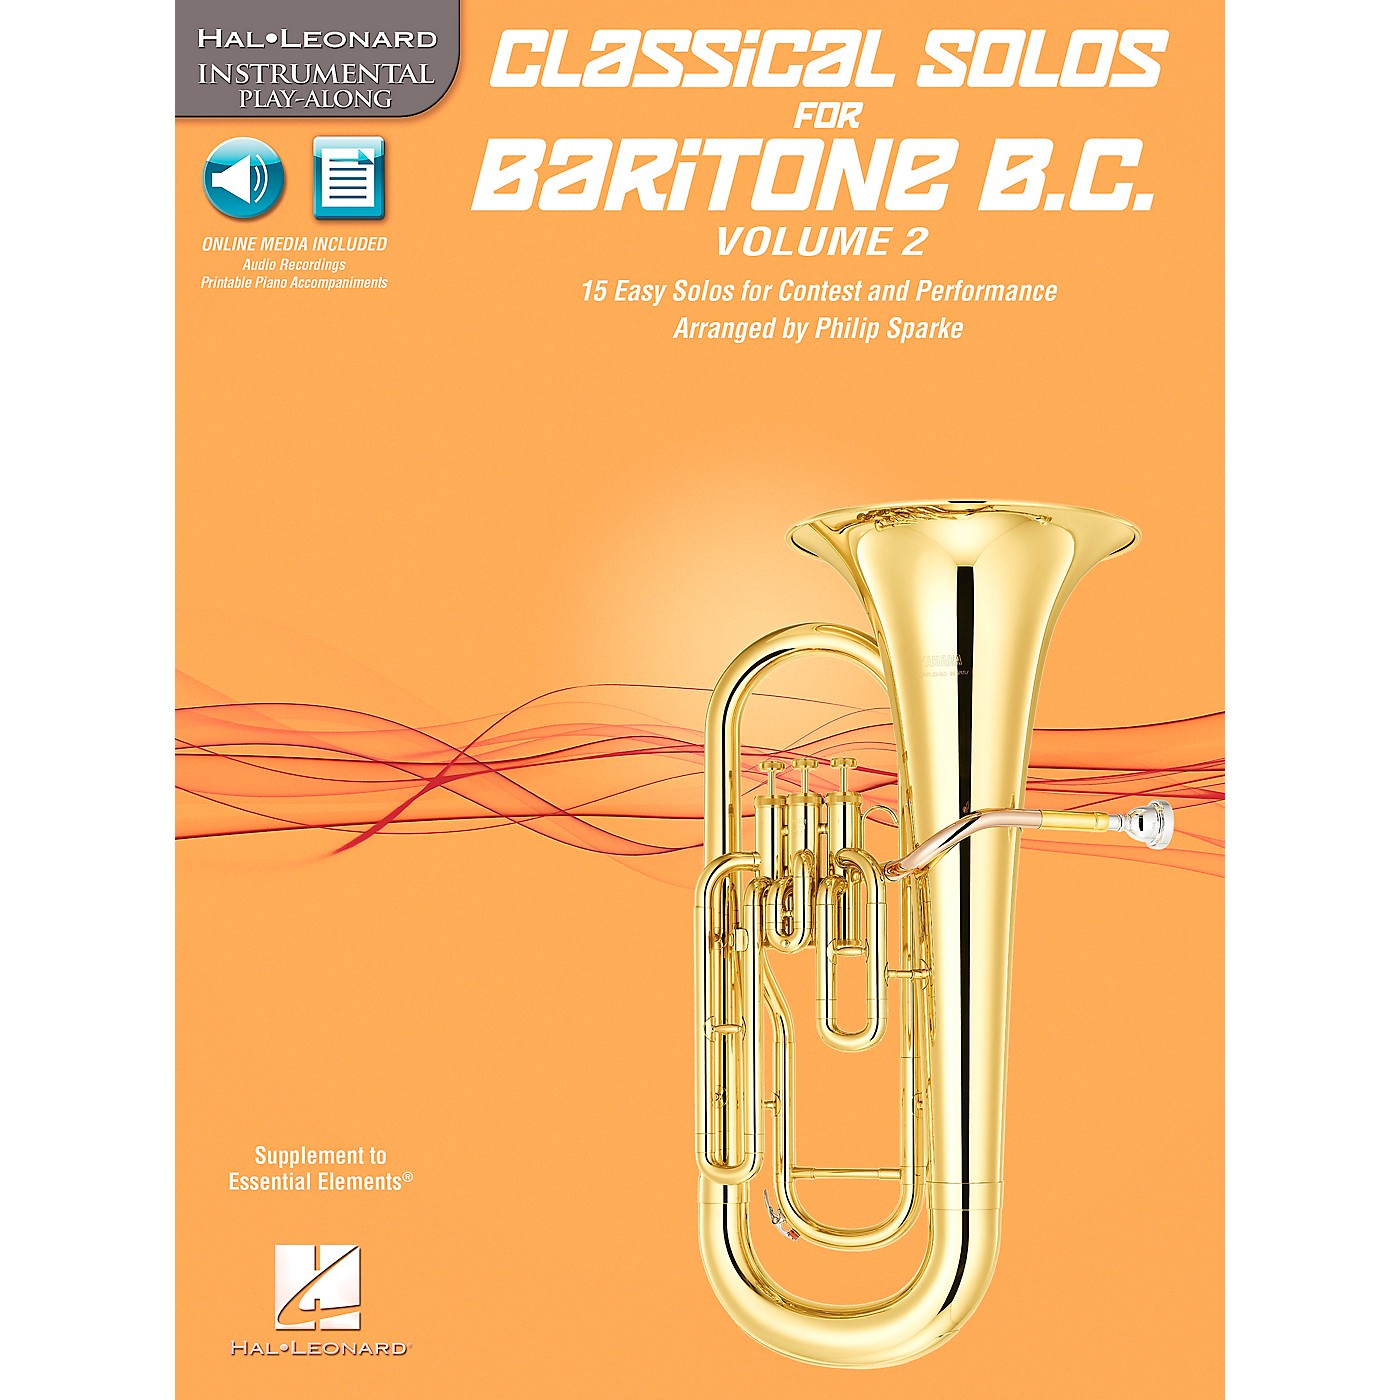 Hal Leonard Classical Solos for Baritone B.C., Vol. 2 Instrumental Folio Series Softcover with CD thumbnail